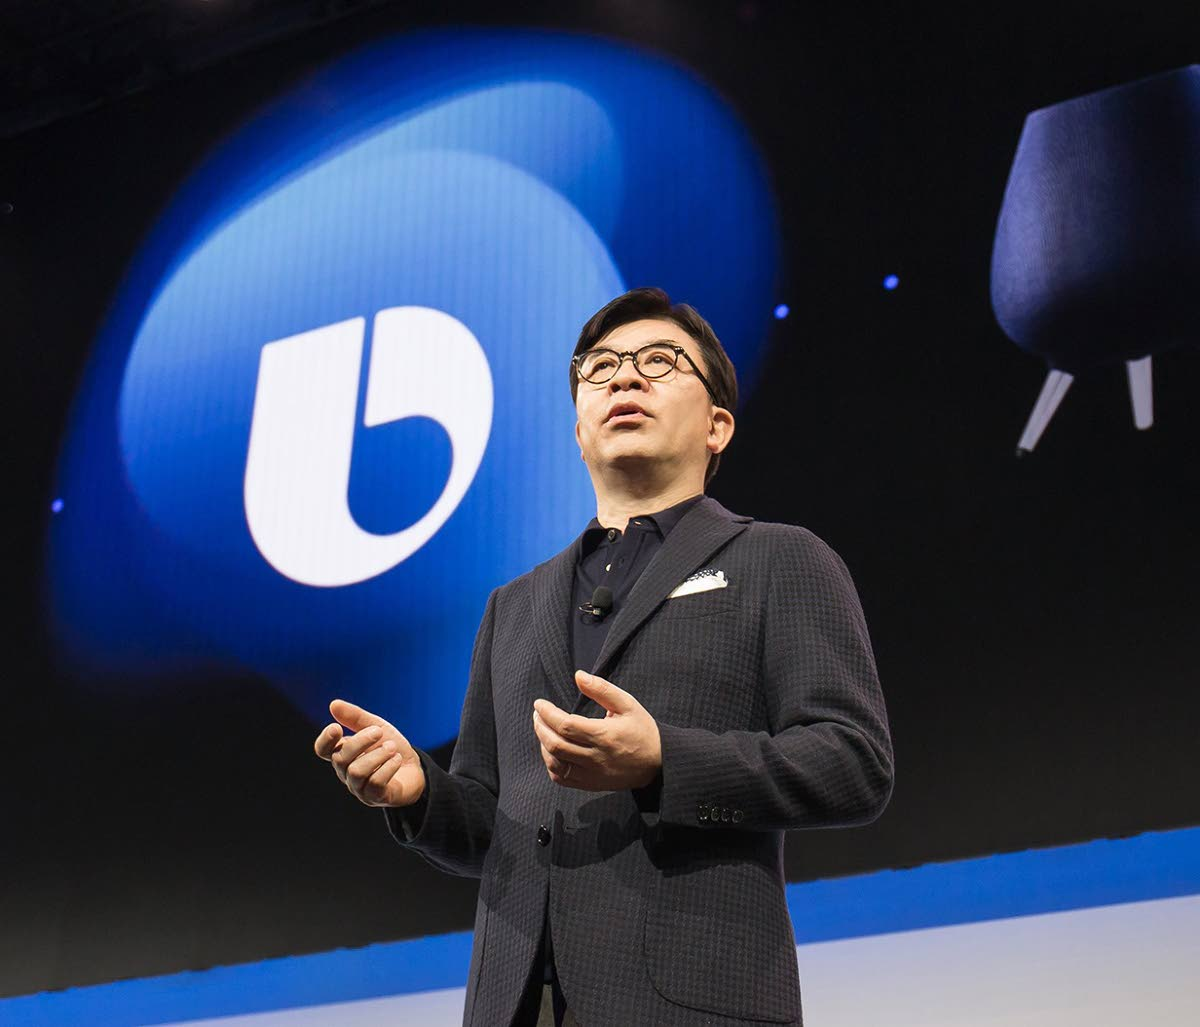 Samsung's president and CEO HS Kim presents the company's strategy at CES. Photos courtesy Samsung.